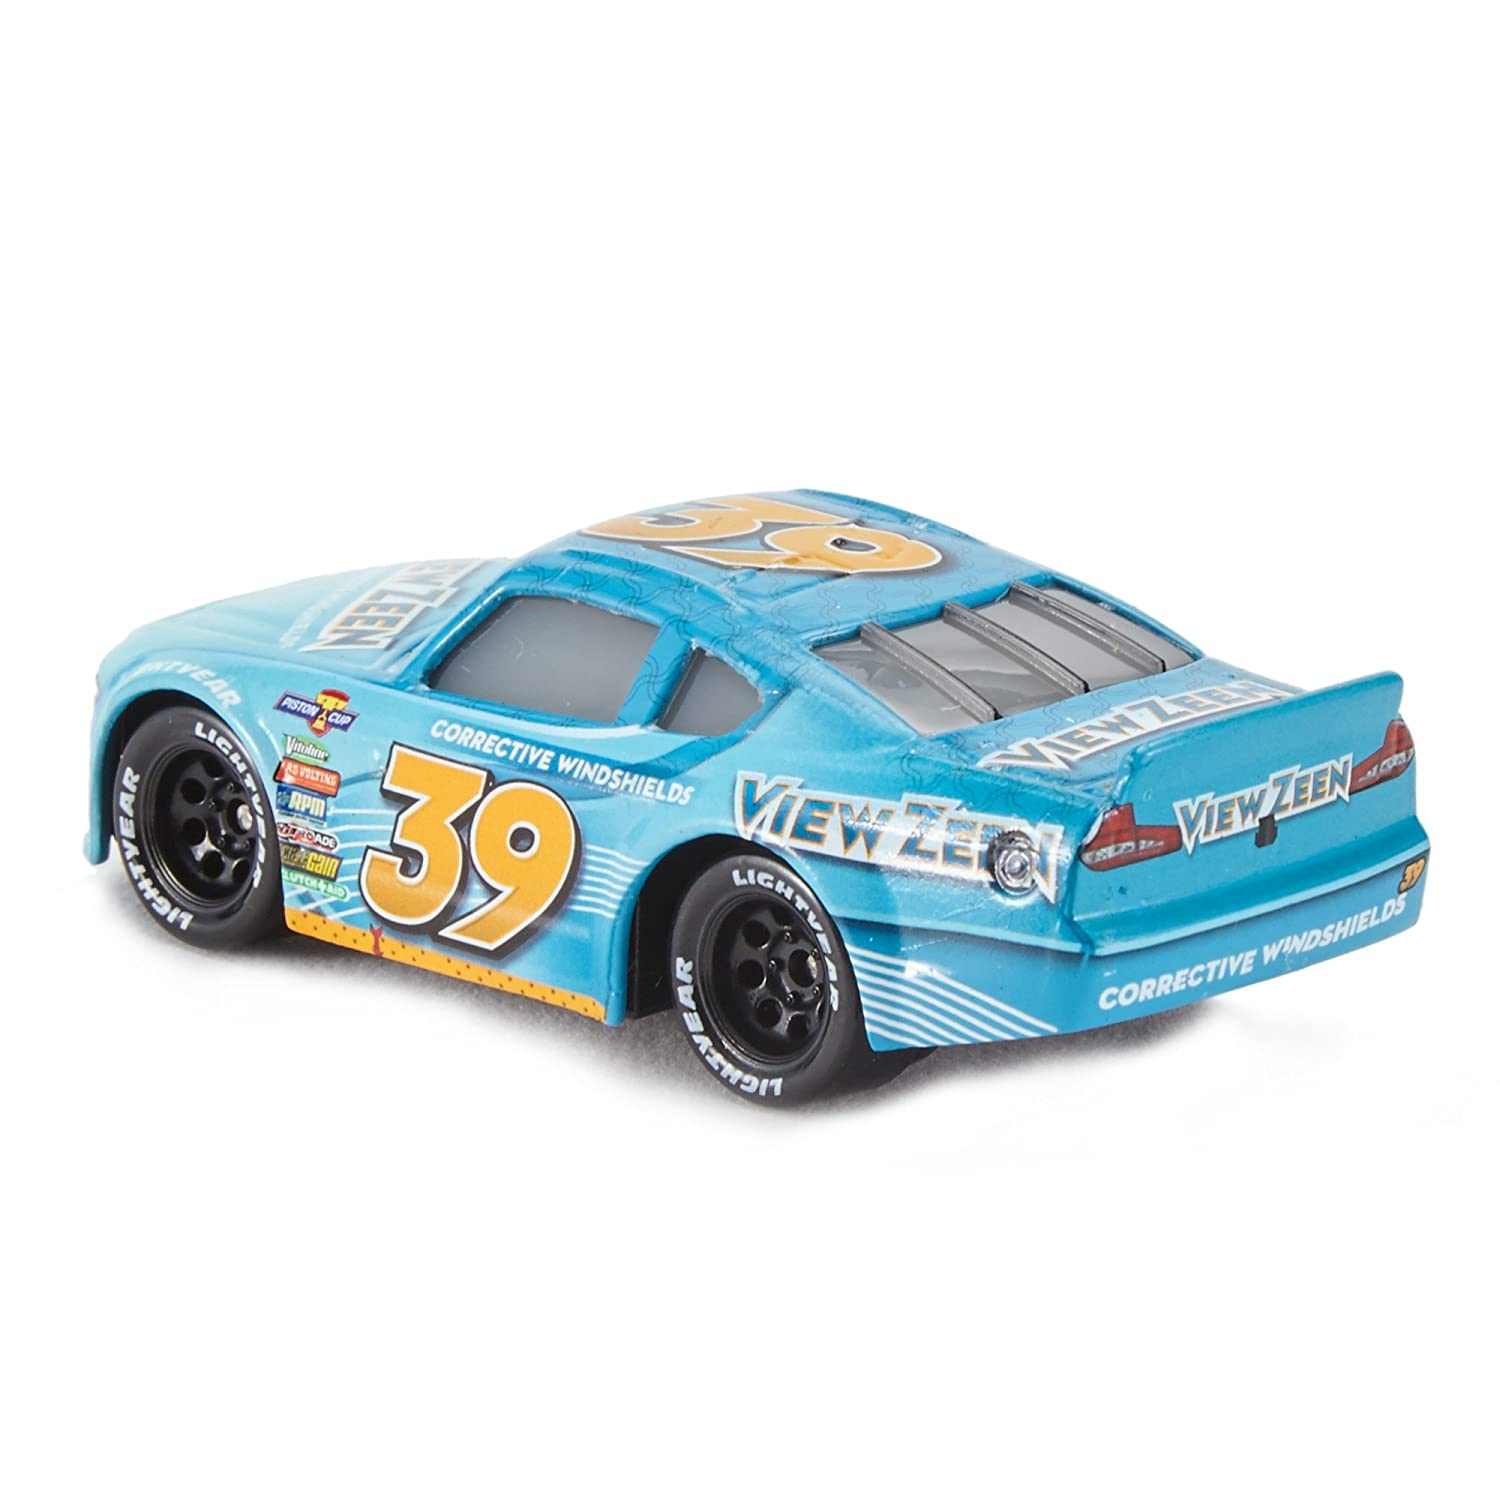 Greg Candyman Multicolor Cars 3 Mattel Vehículo Diecast Flm07 mnOy0v8wN